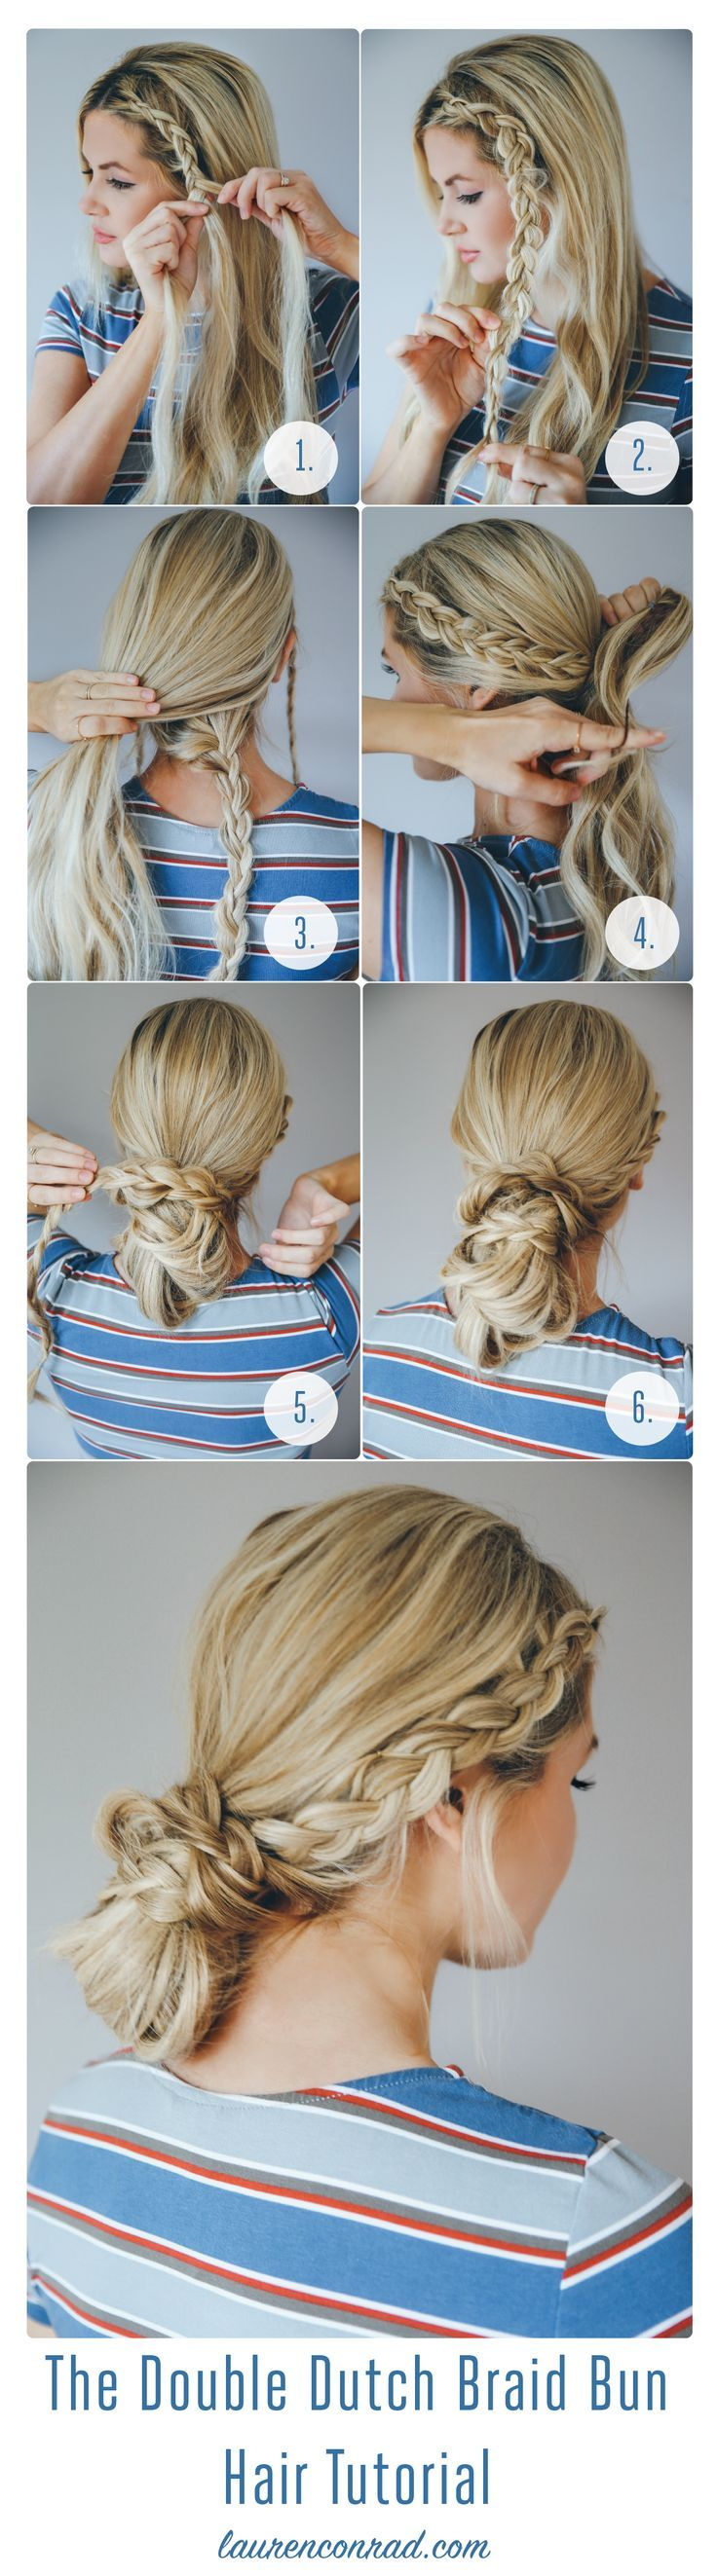 25 step by step tutorial for beautiful hair updos ❤ - trend